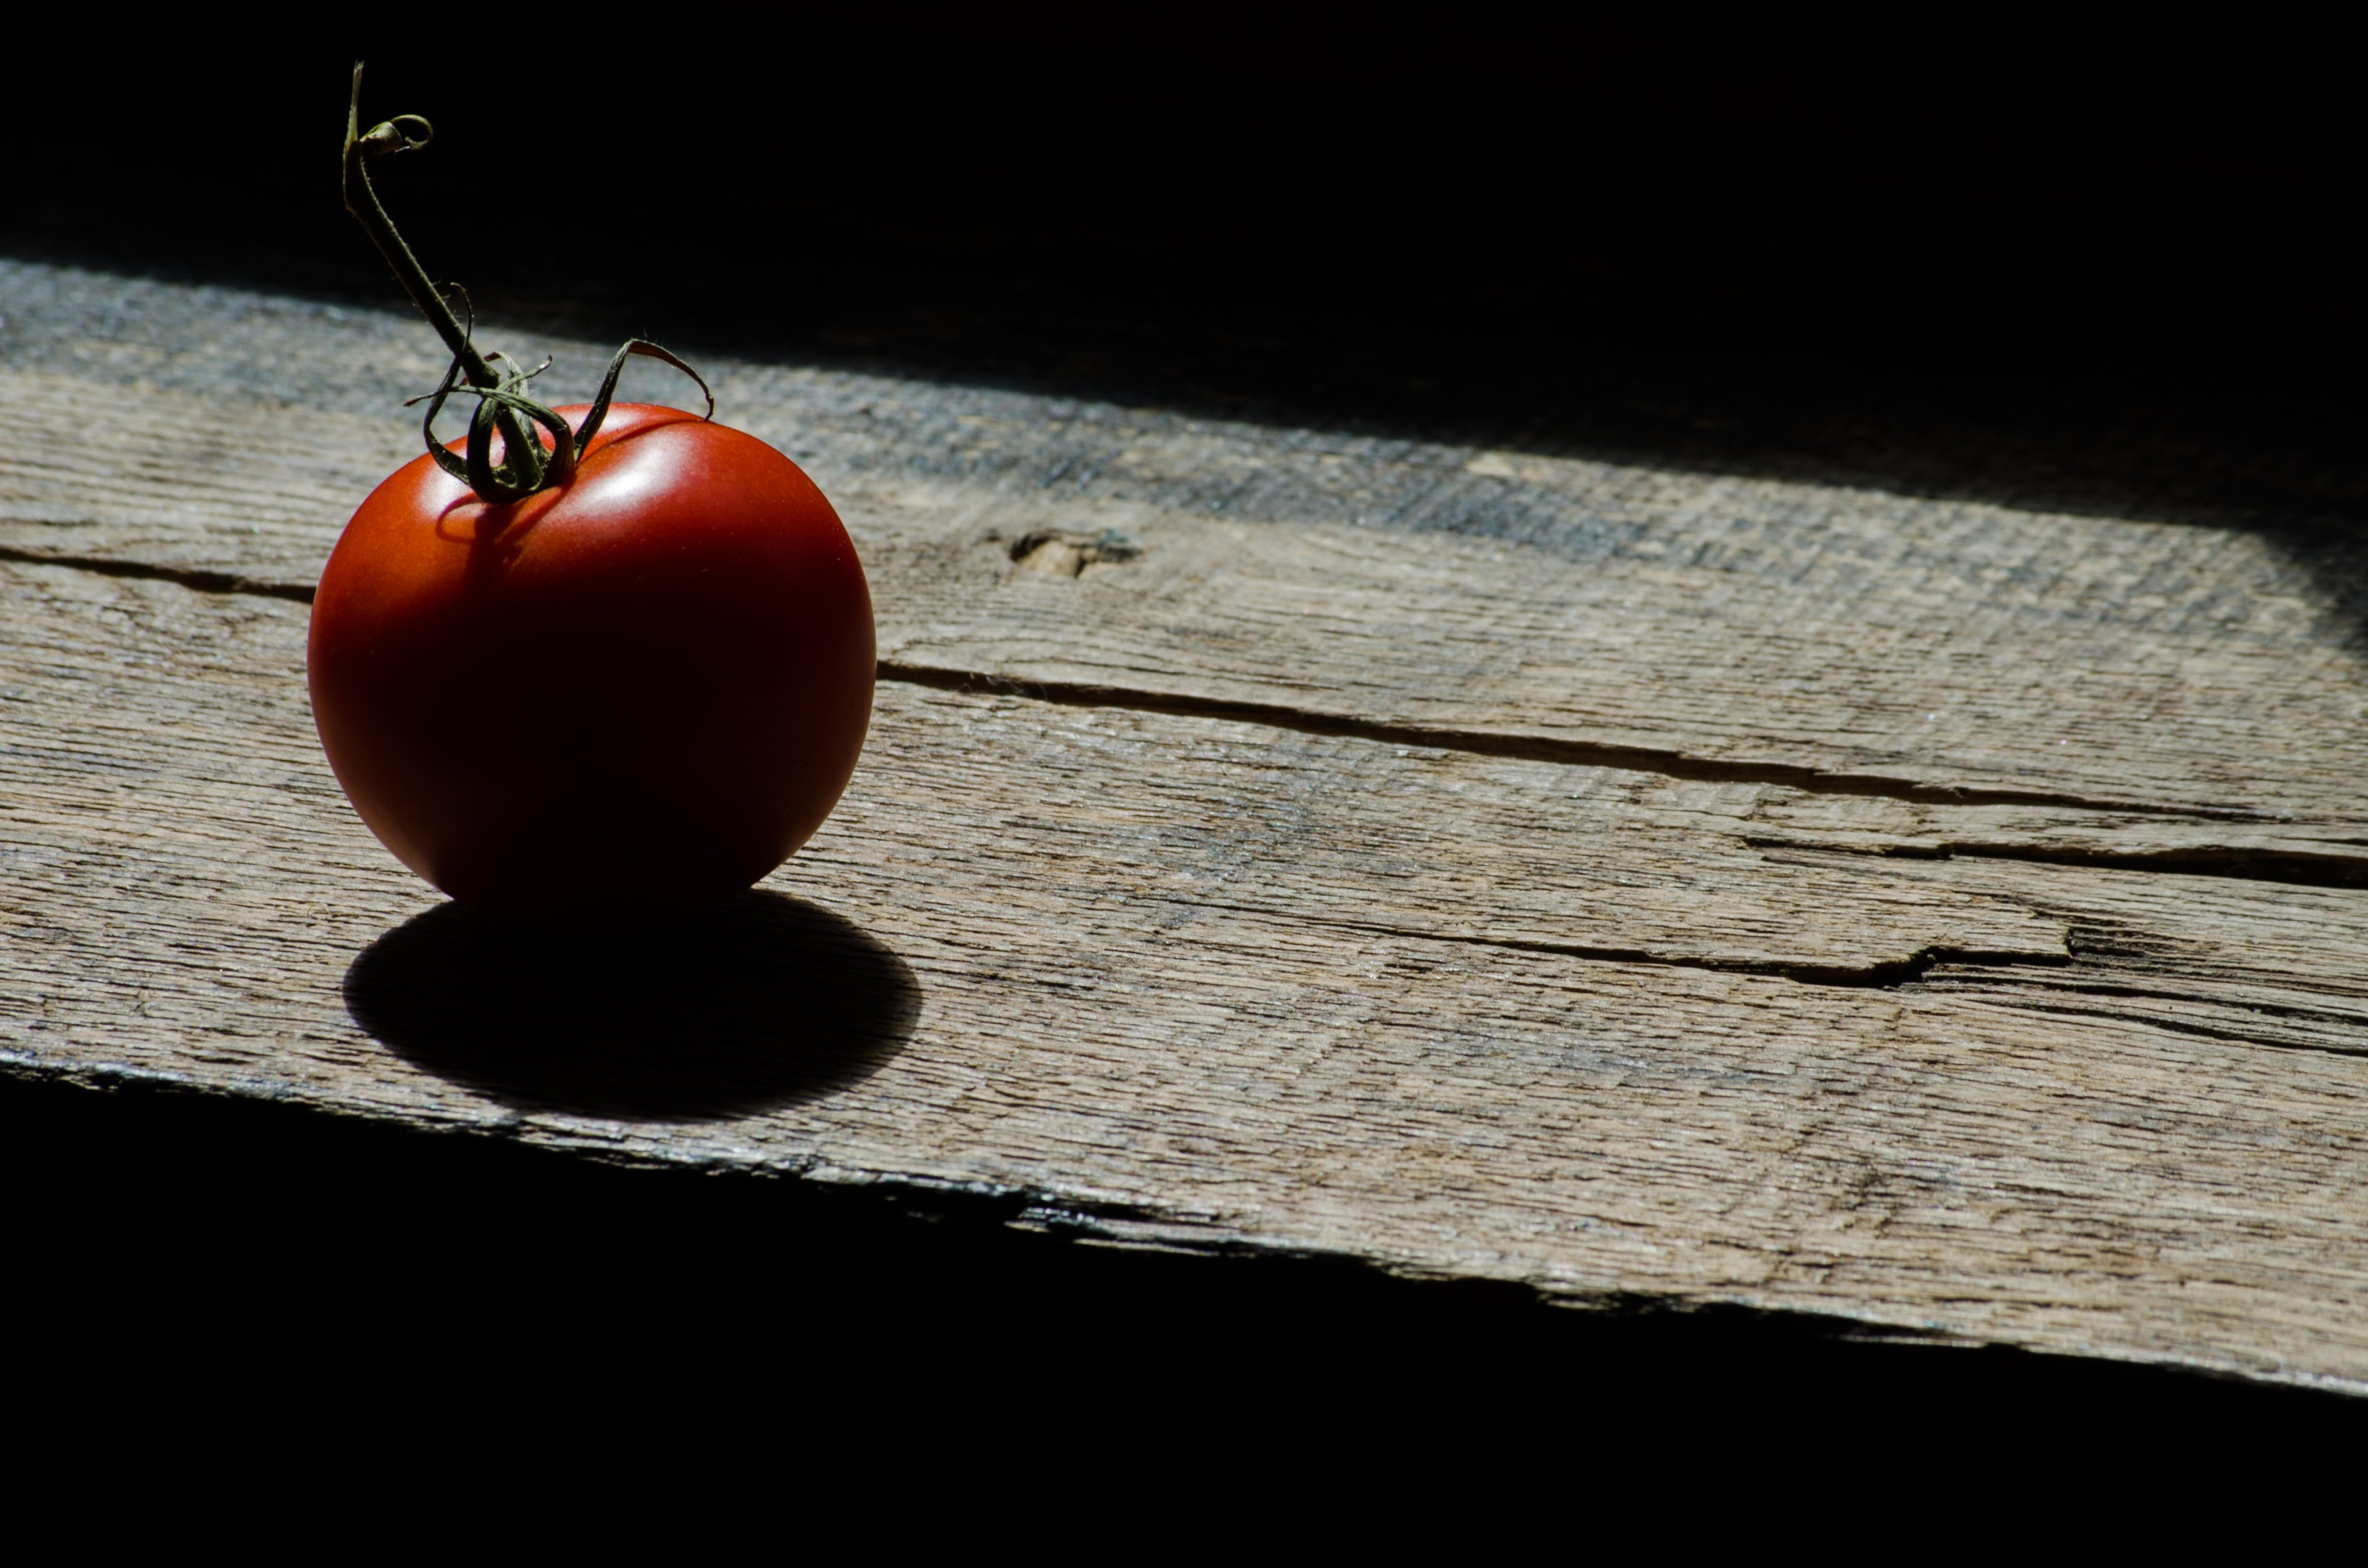 Red Tomato on Brown Surface